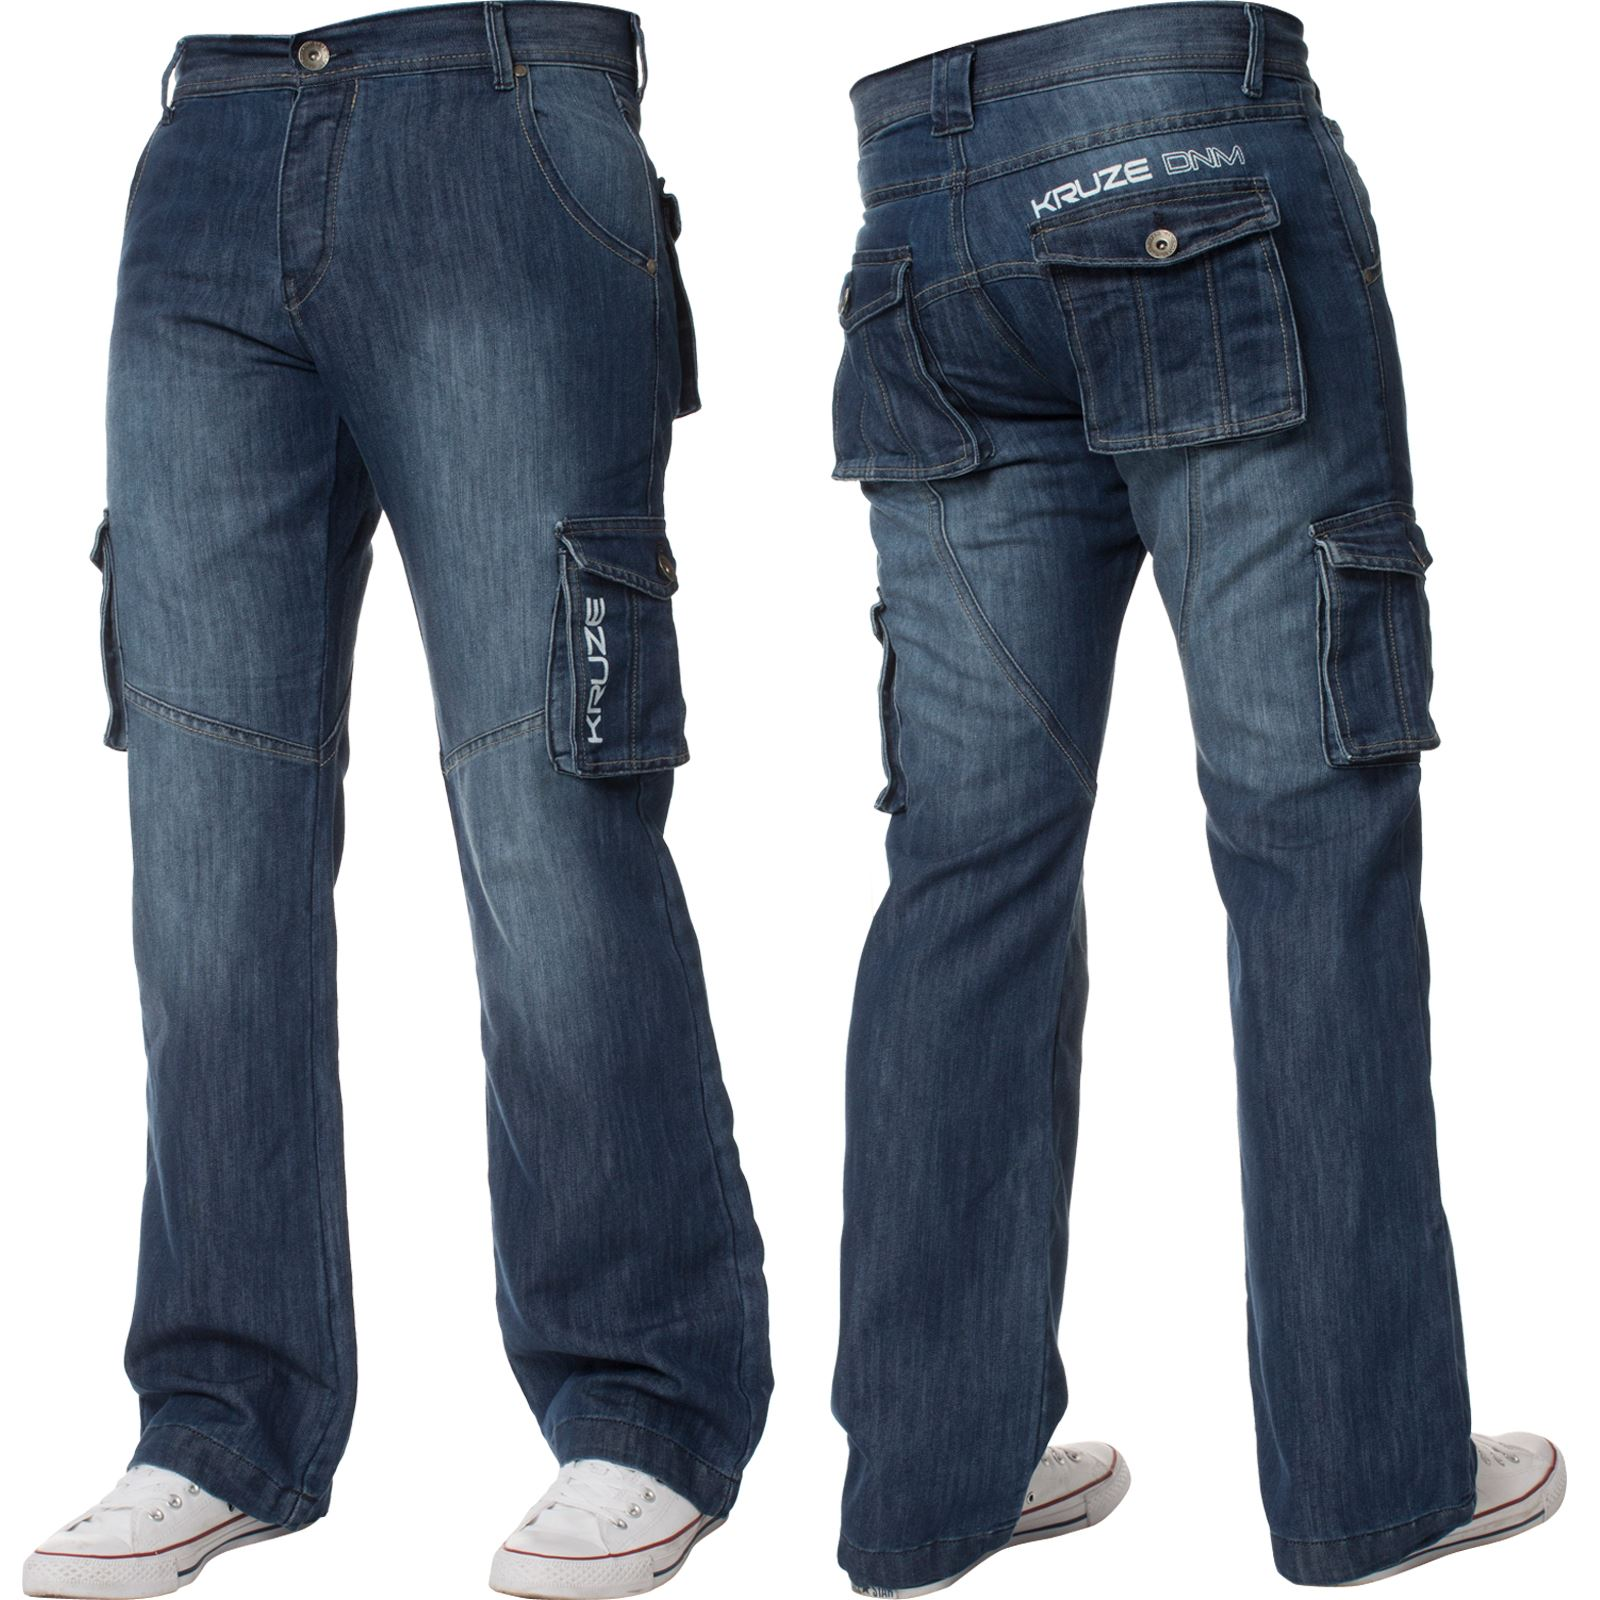 Mens-Cargo-Jeans-Combat-Trousers-Heavy-Duty-Work-Casual-Big-Tall-Denim-Pants thumbnail 51